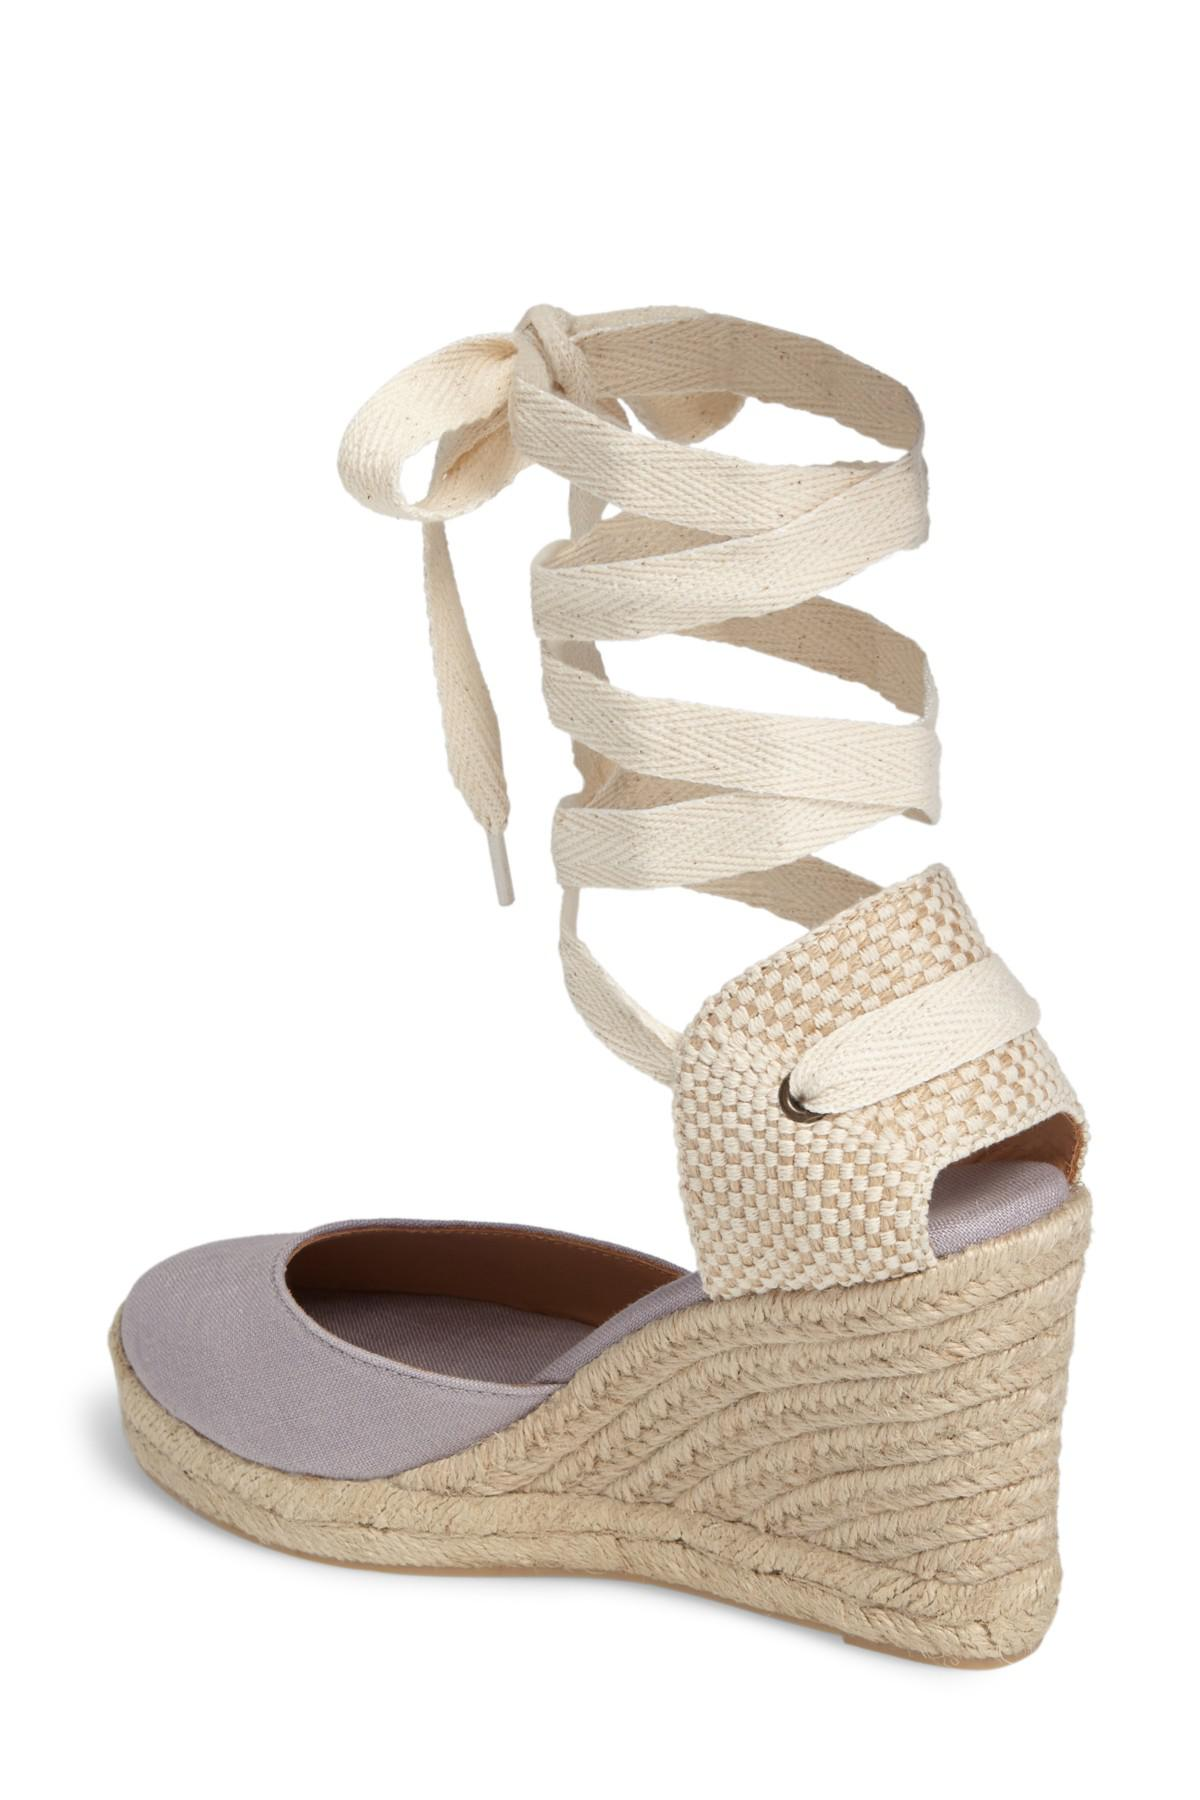 75a52d121d7 Lyst - Soludos Tall Wedge Espadrille (women) in Gray